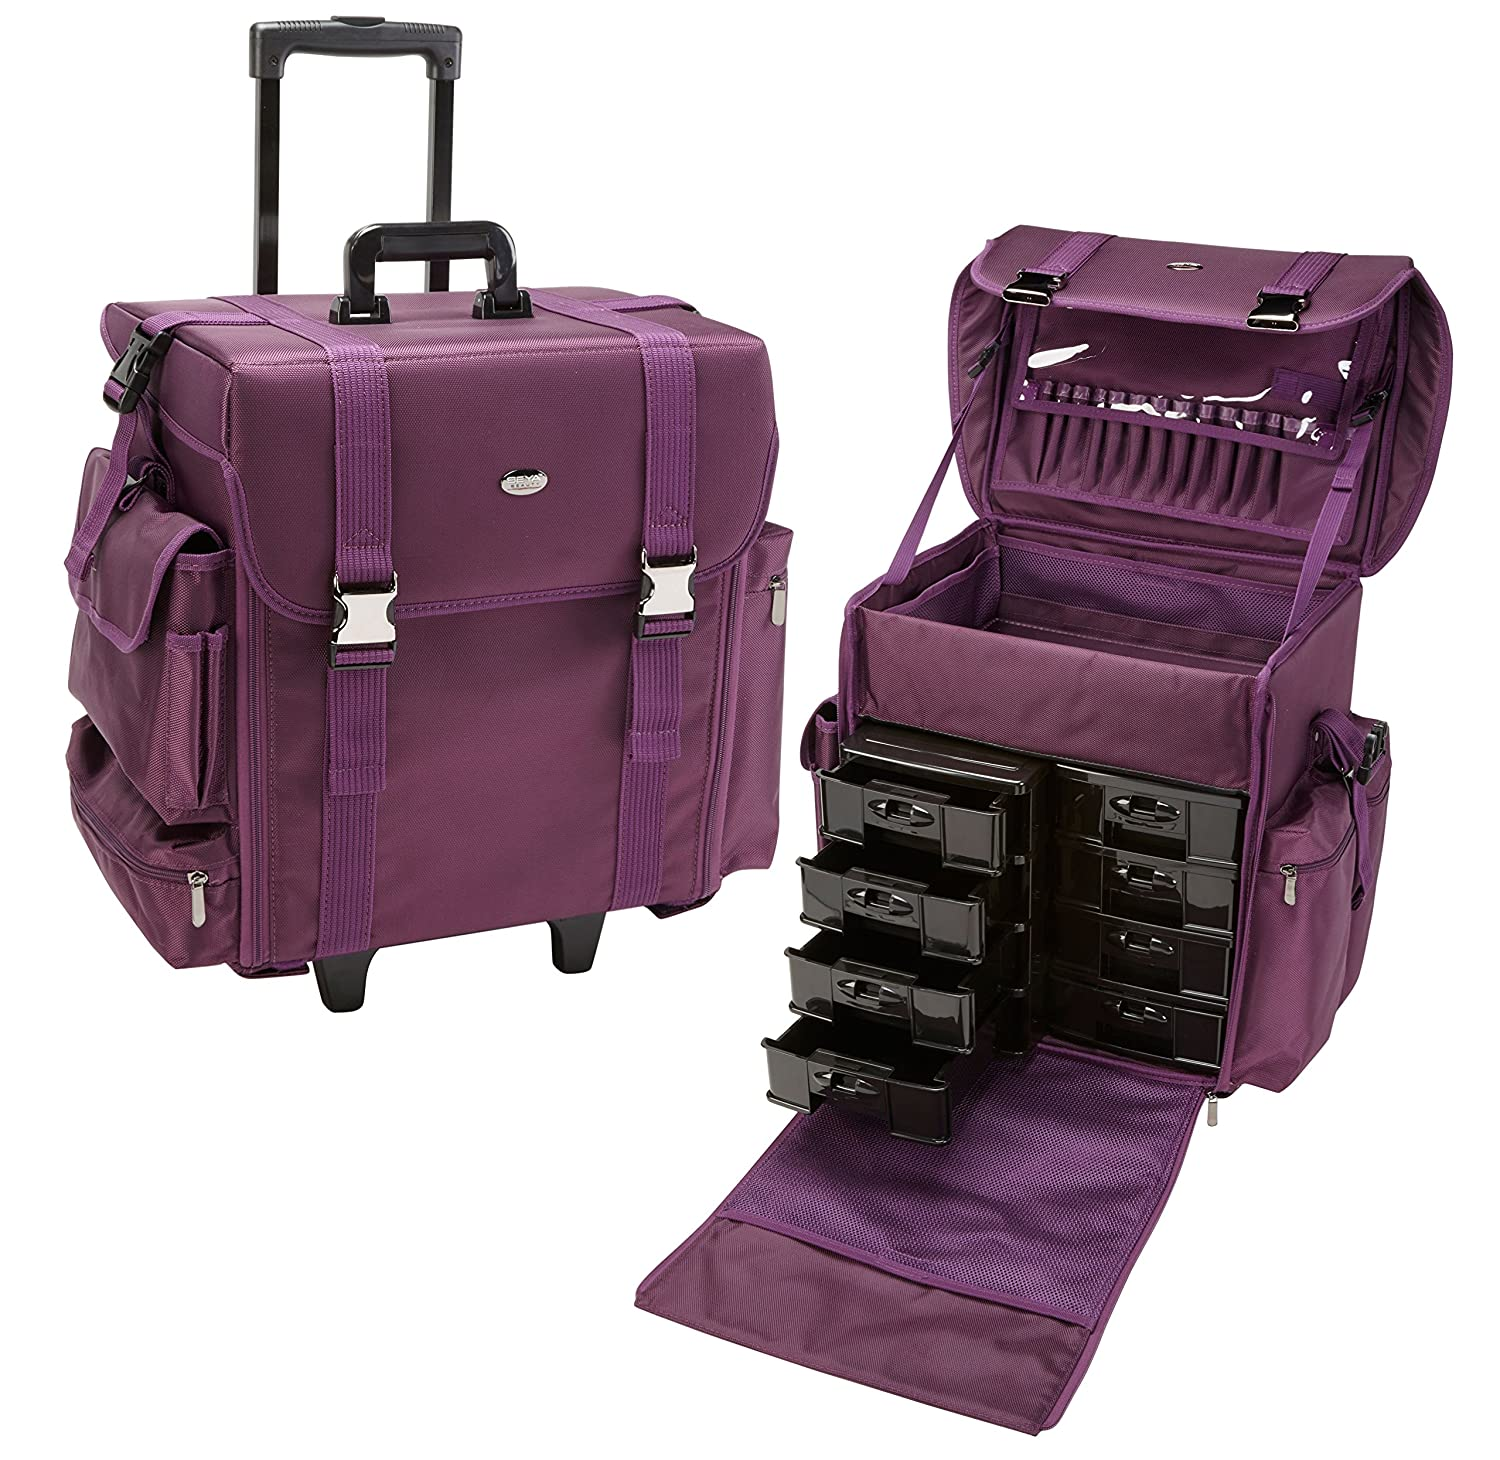 Delicieux Amazon.com : Seya 19.5 Inch Soft Nylon Professional Artist Rolling Wheeled  Trolley Makeup Train Case Cosmetic Organizer W/ 8 Drawers (Purple) : Beauty